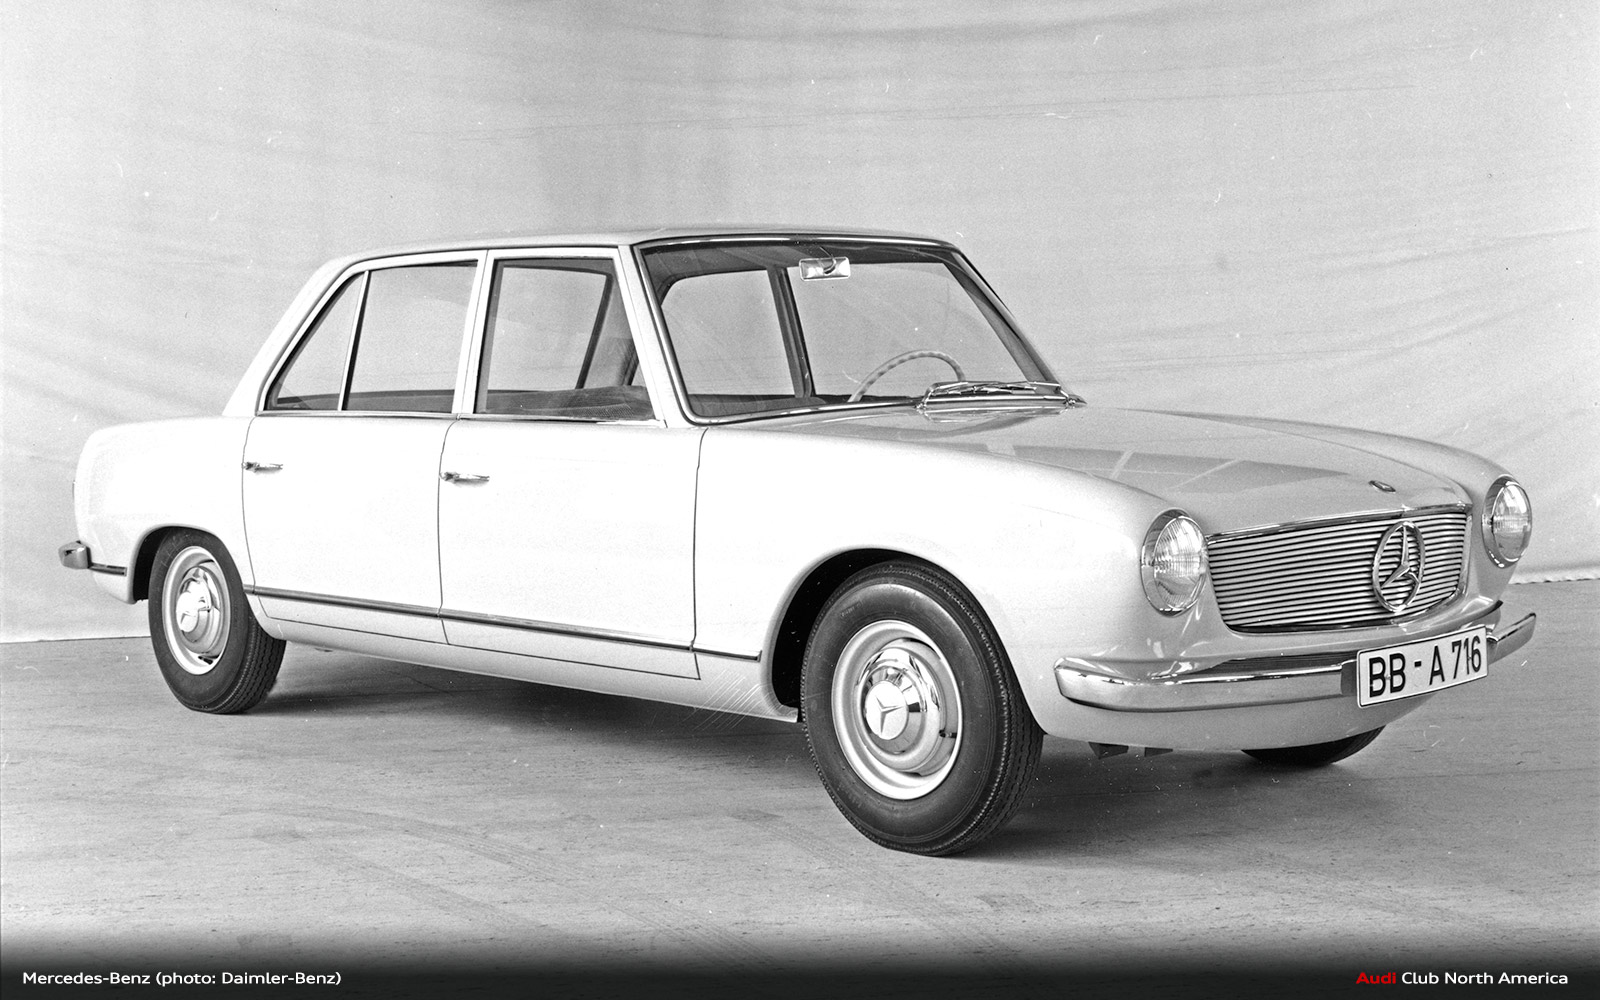 60 Years Ago, Daimler-Benz Acquired Auto Union